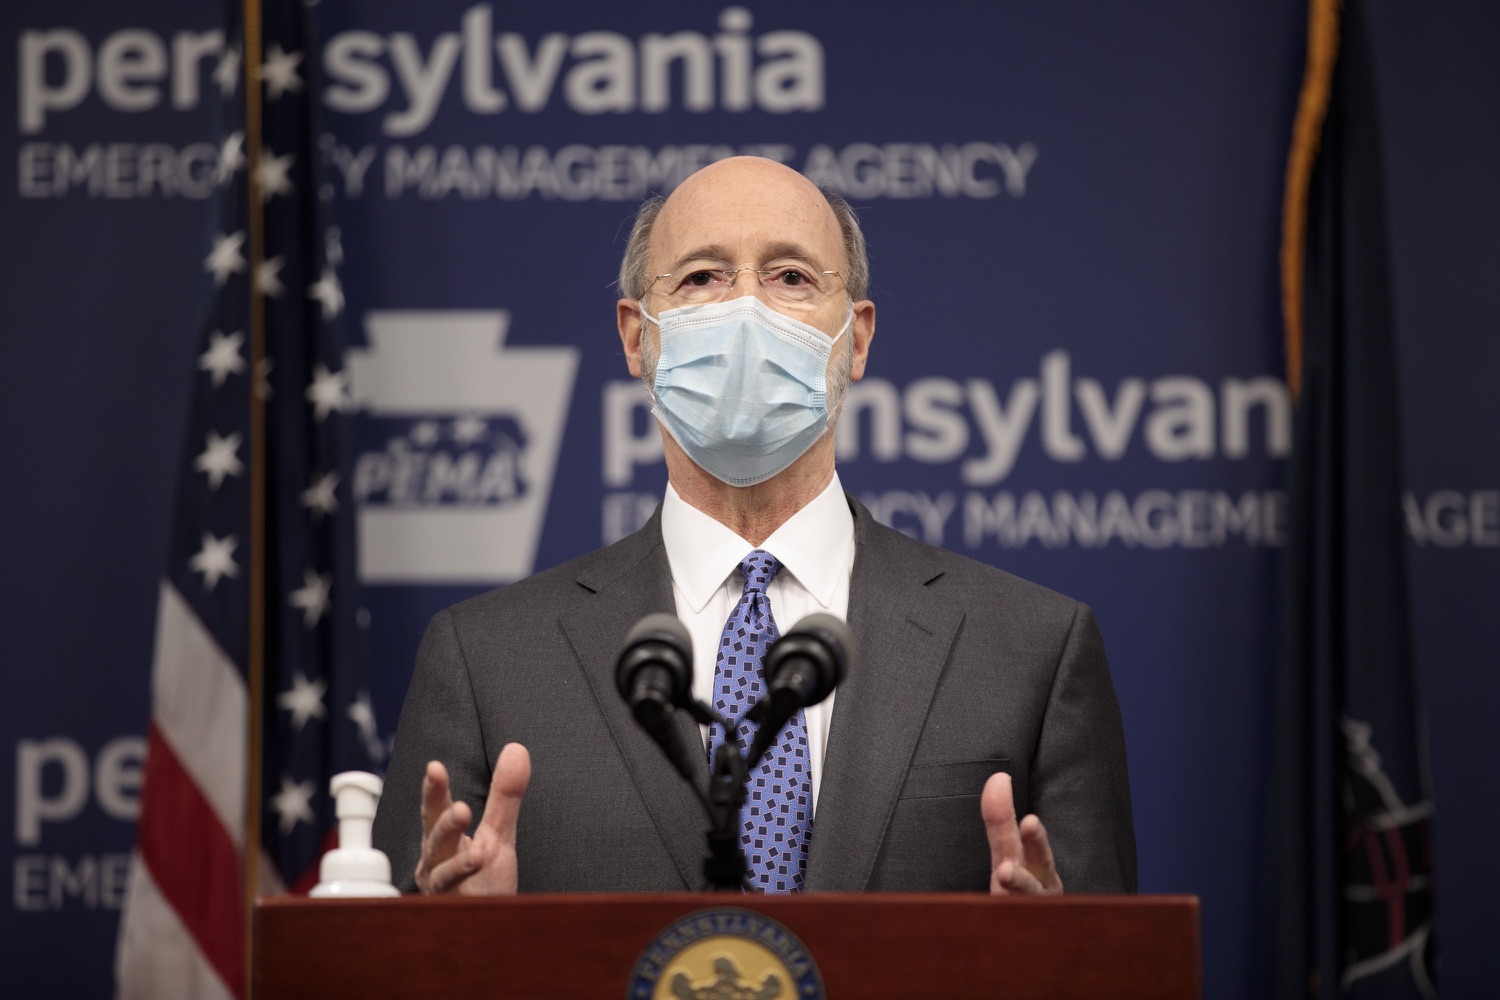 """<a href=""""https://filesource.wostreaming.net/commonwealthofpa/photo/18472_gov_vaccine_dz_20.jpg"""" target=""""_blank"""">⇣Download Photo<br></a>Pennsylvania Governor Tom Wolf speaks at the press conference.  The commonwealths COVID-19 vaccination distribution plan was designed to be fluid and flexible to meet guidance and recommendations from the federal government. Today, Governor Tom Wolf and Secretary of Health Dr. Rachel Levine announced the fourth version of the plan, detailing the updates and how the state is working to ensure safe, swift implementation. Harrisburg, PA  January 8, 2021"""